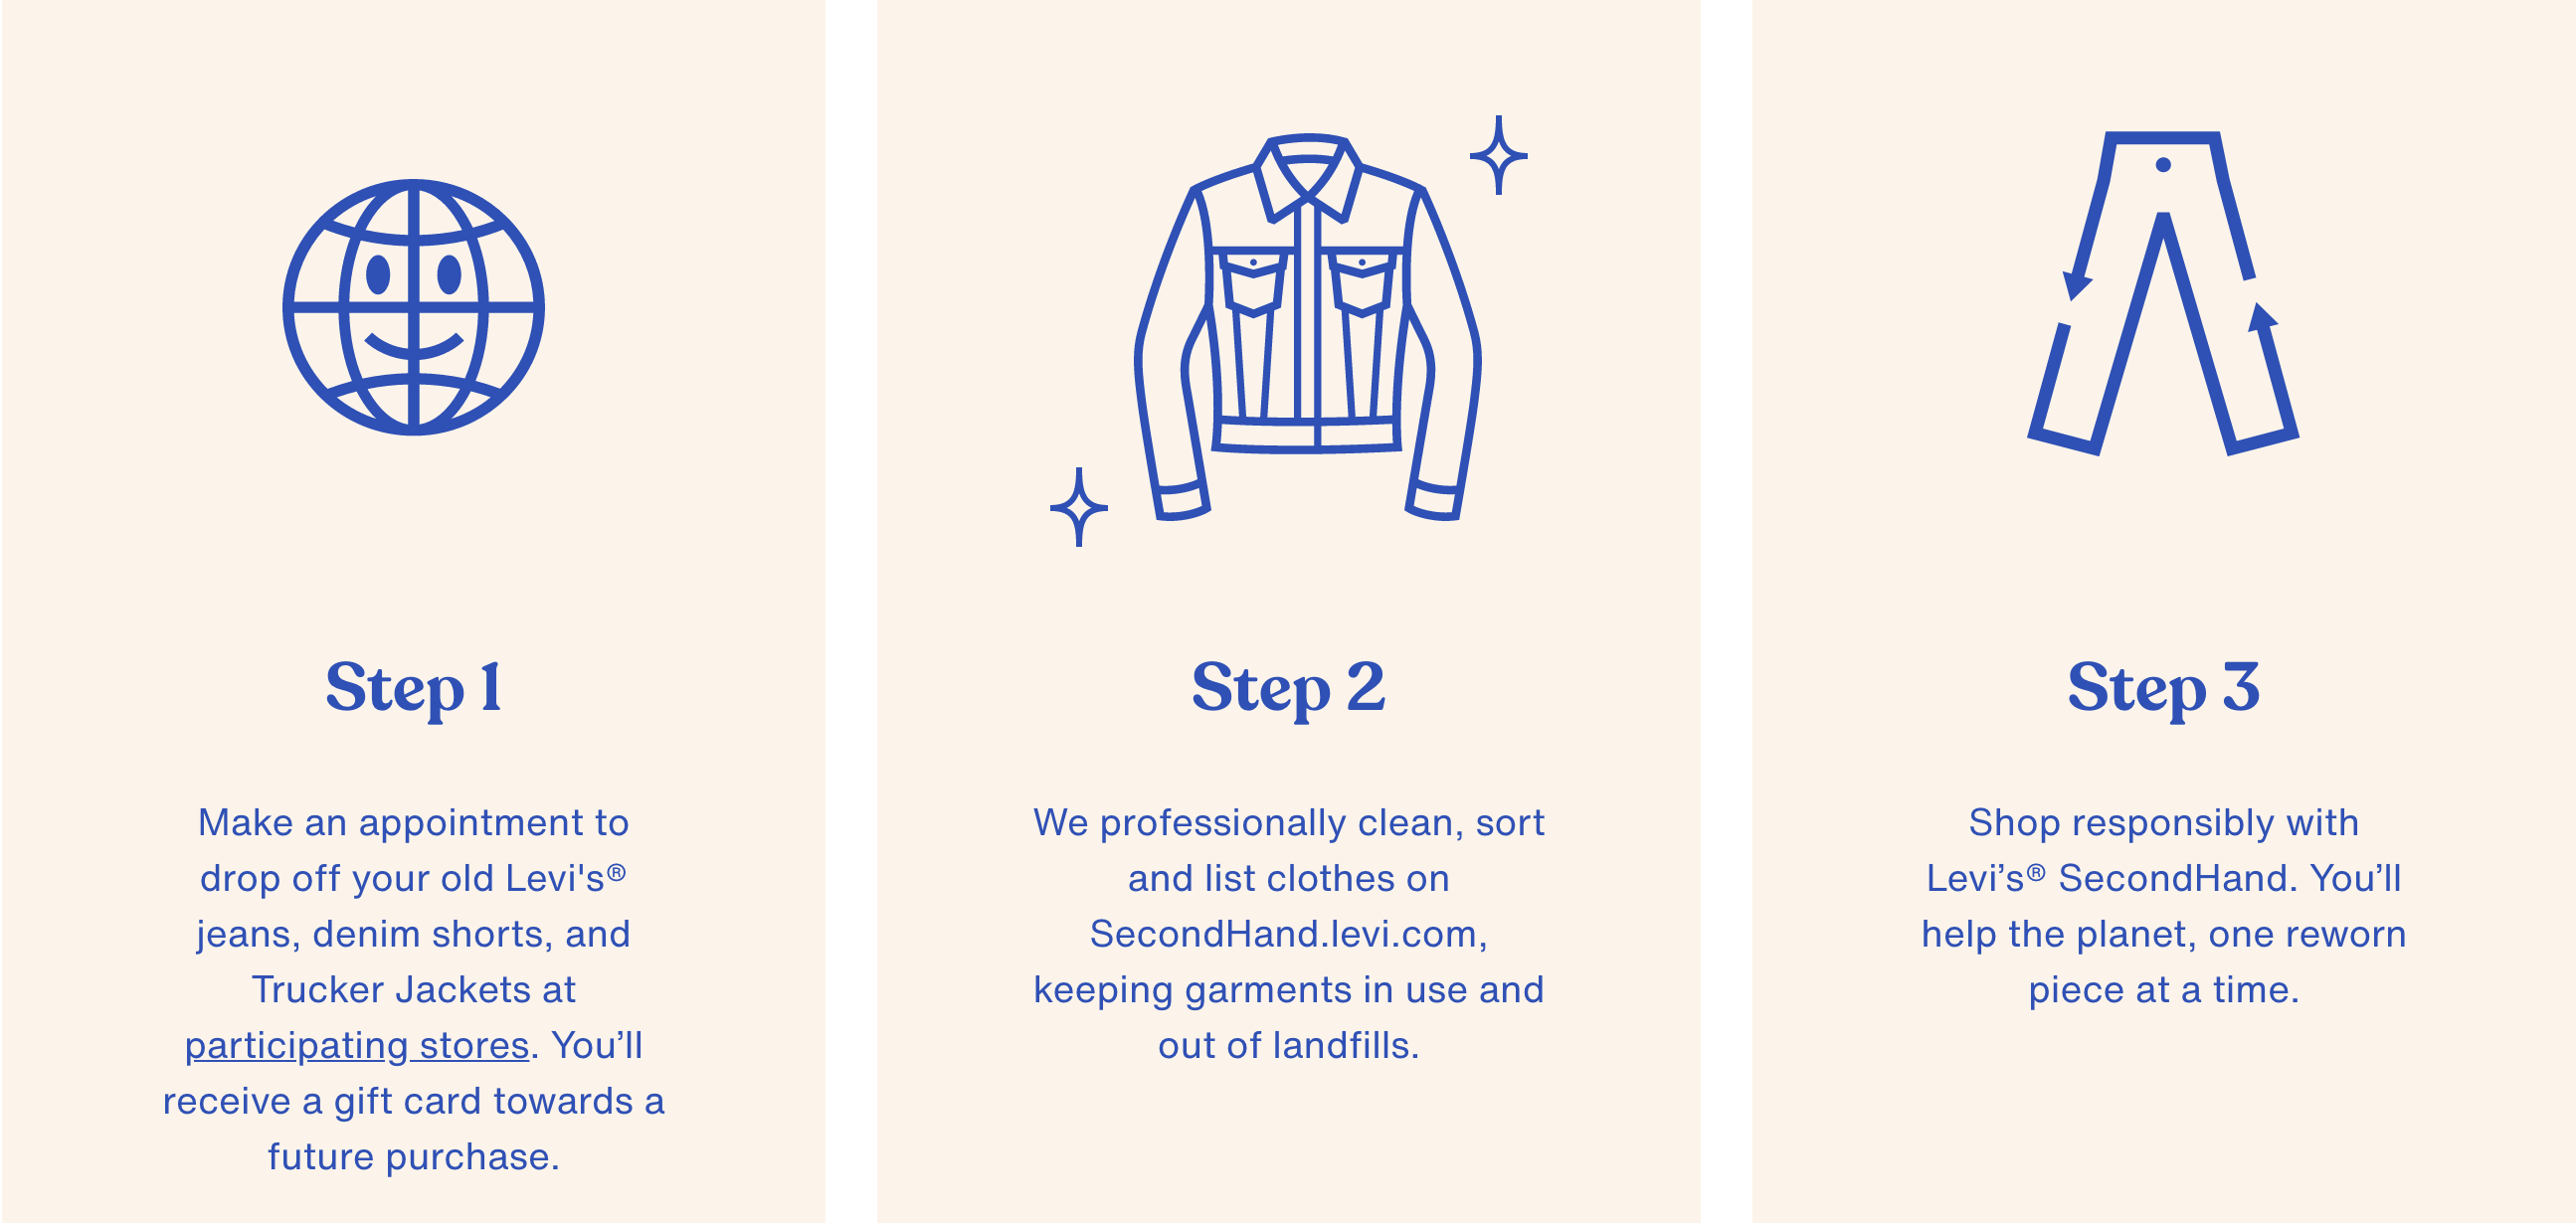 Levi's online Second-hand store